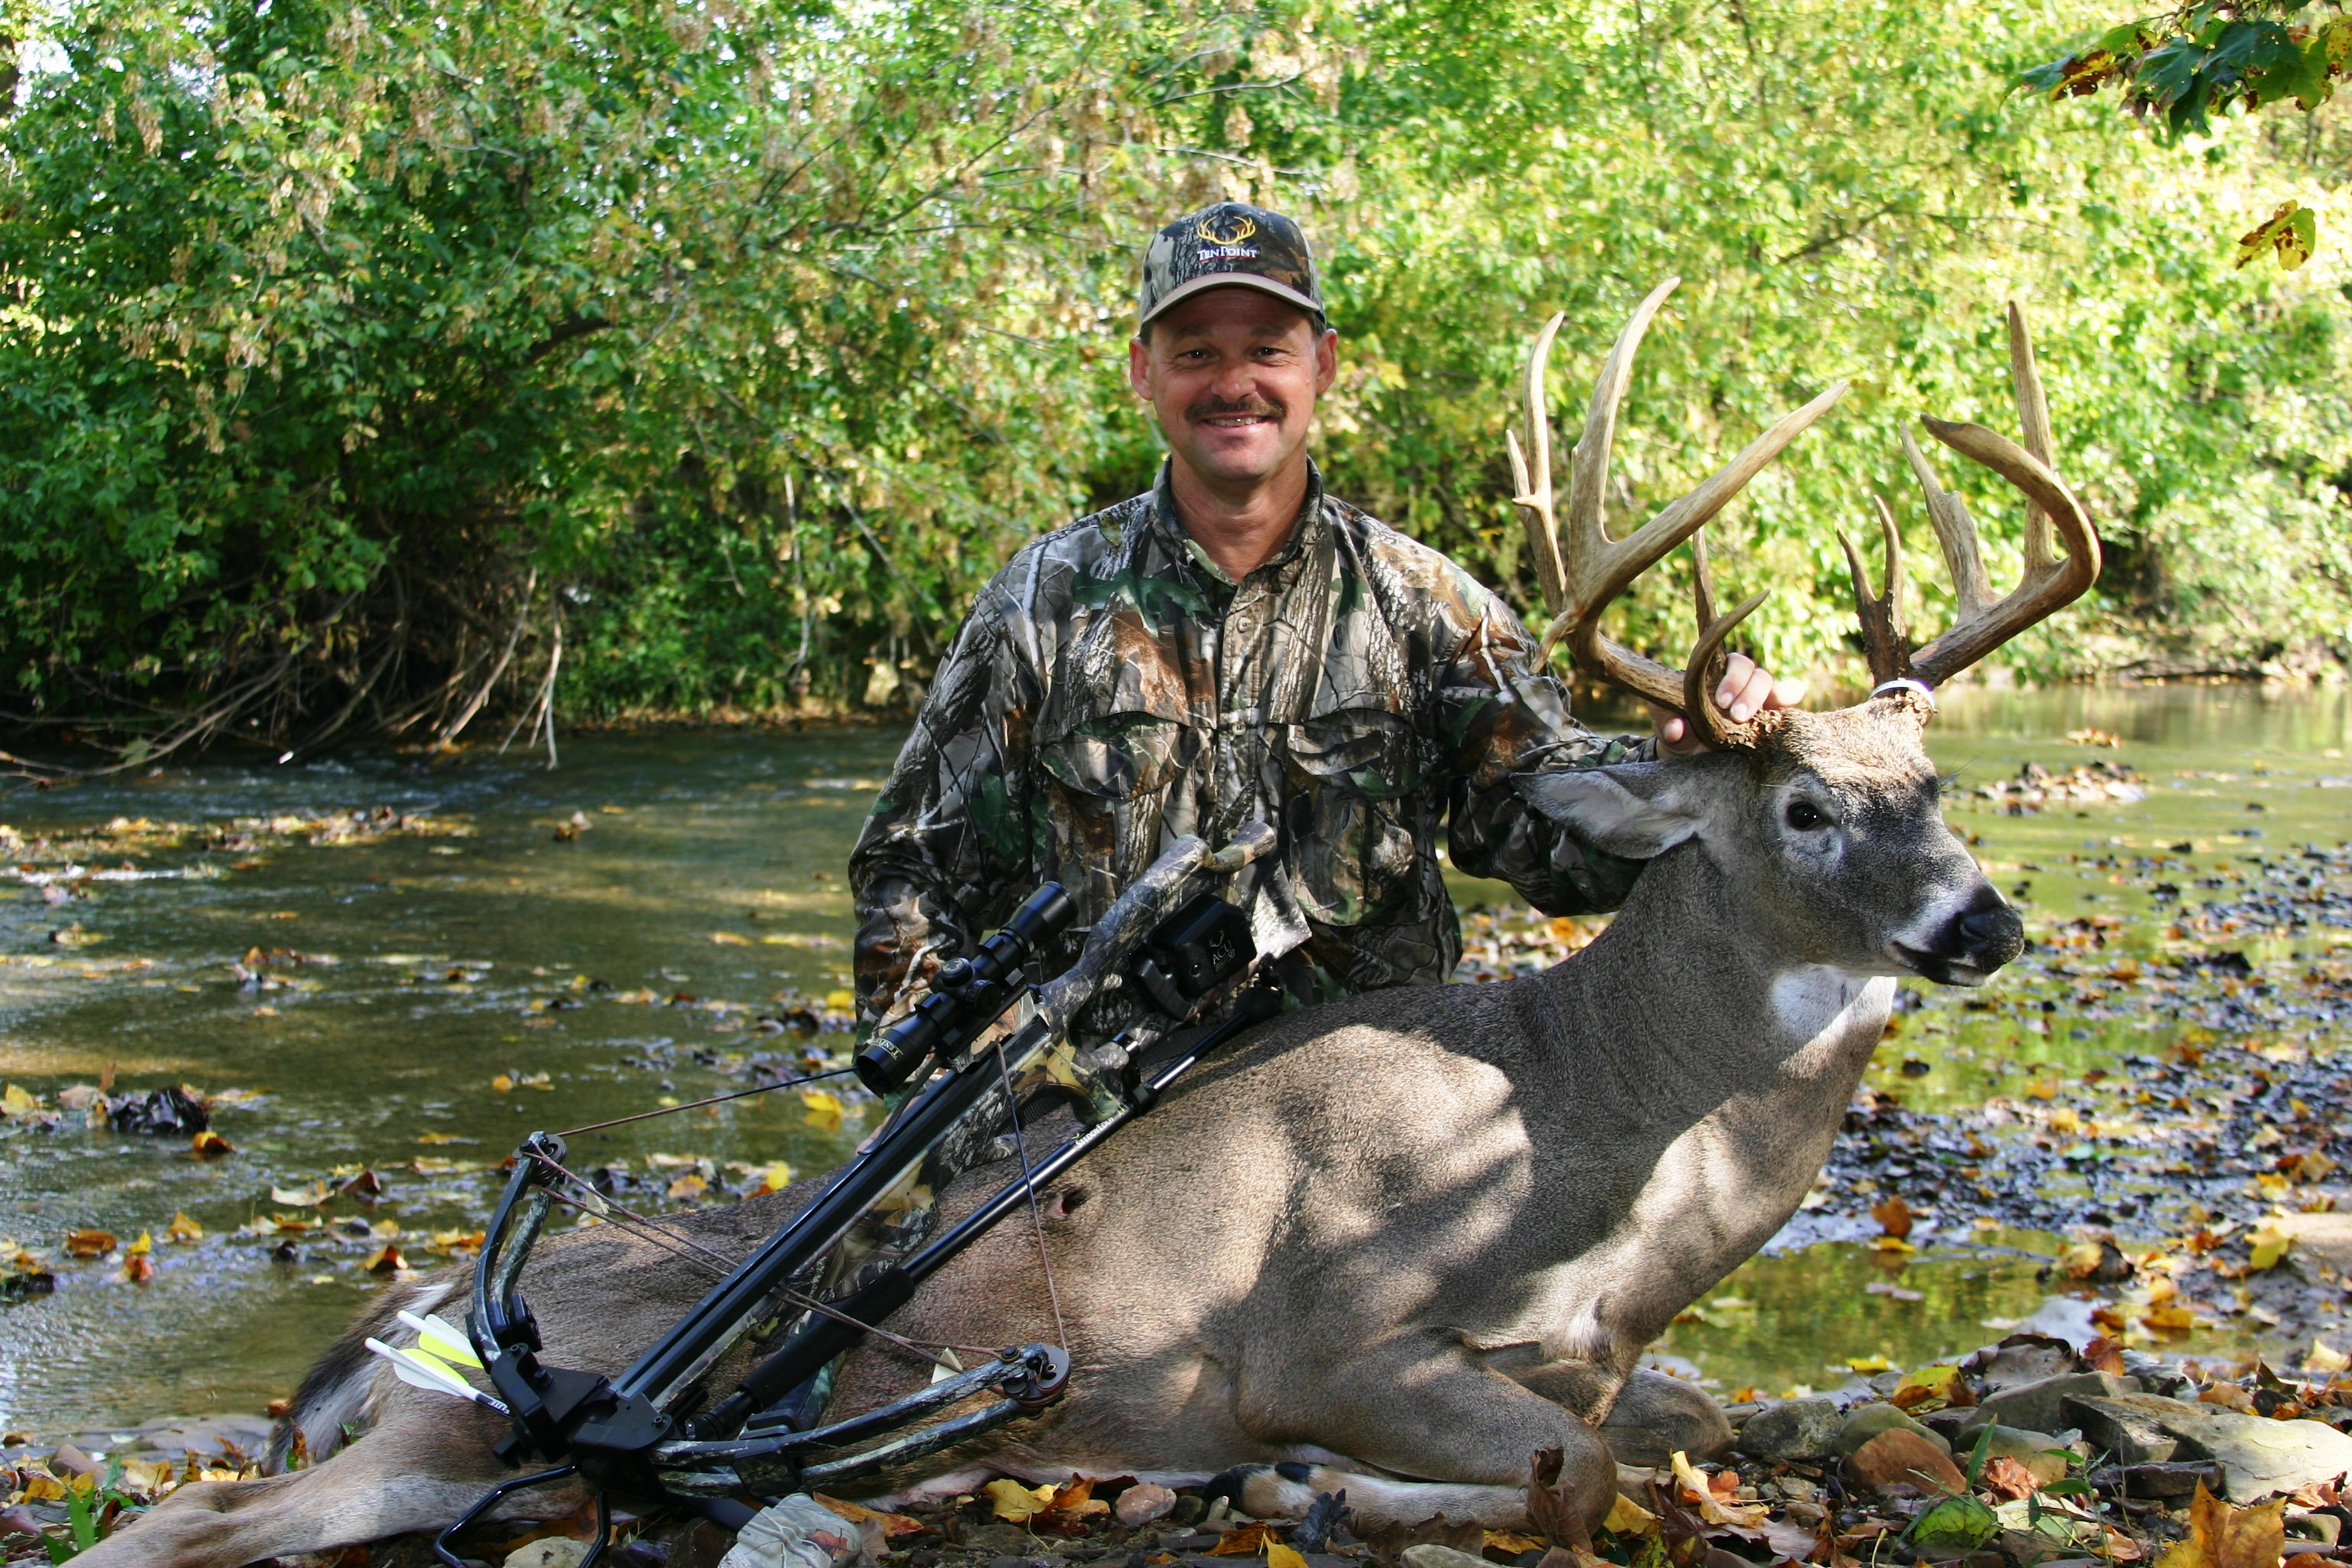 Rick Bedar, founder of TenPoint and Wicked Ridge crossbows.